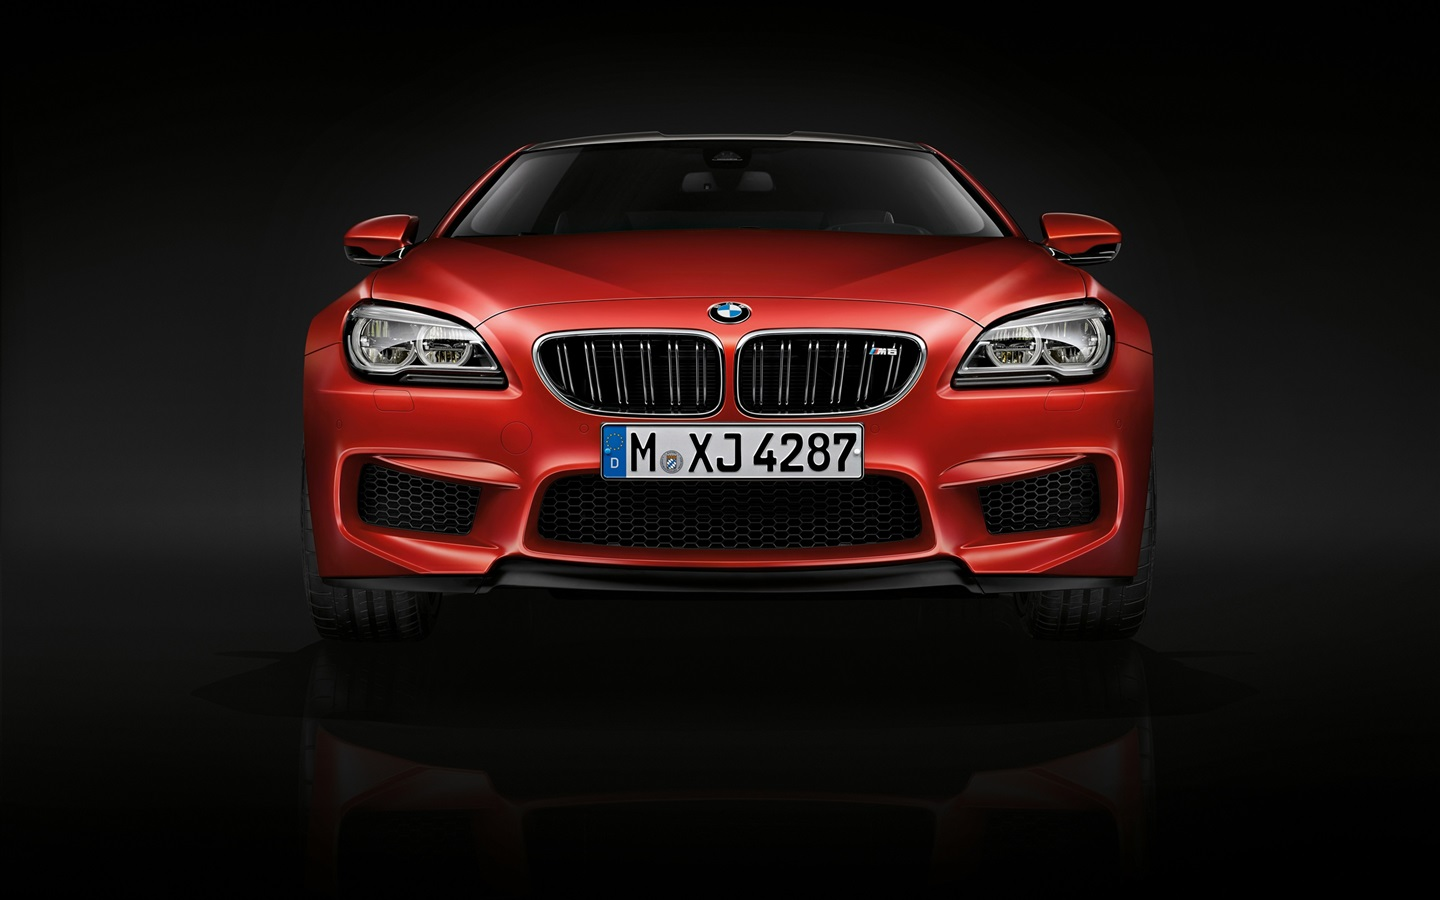 2015 BMW M6 coupe, F13 red car front view Wallpaper  1440x900